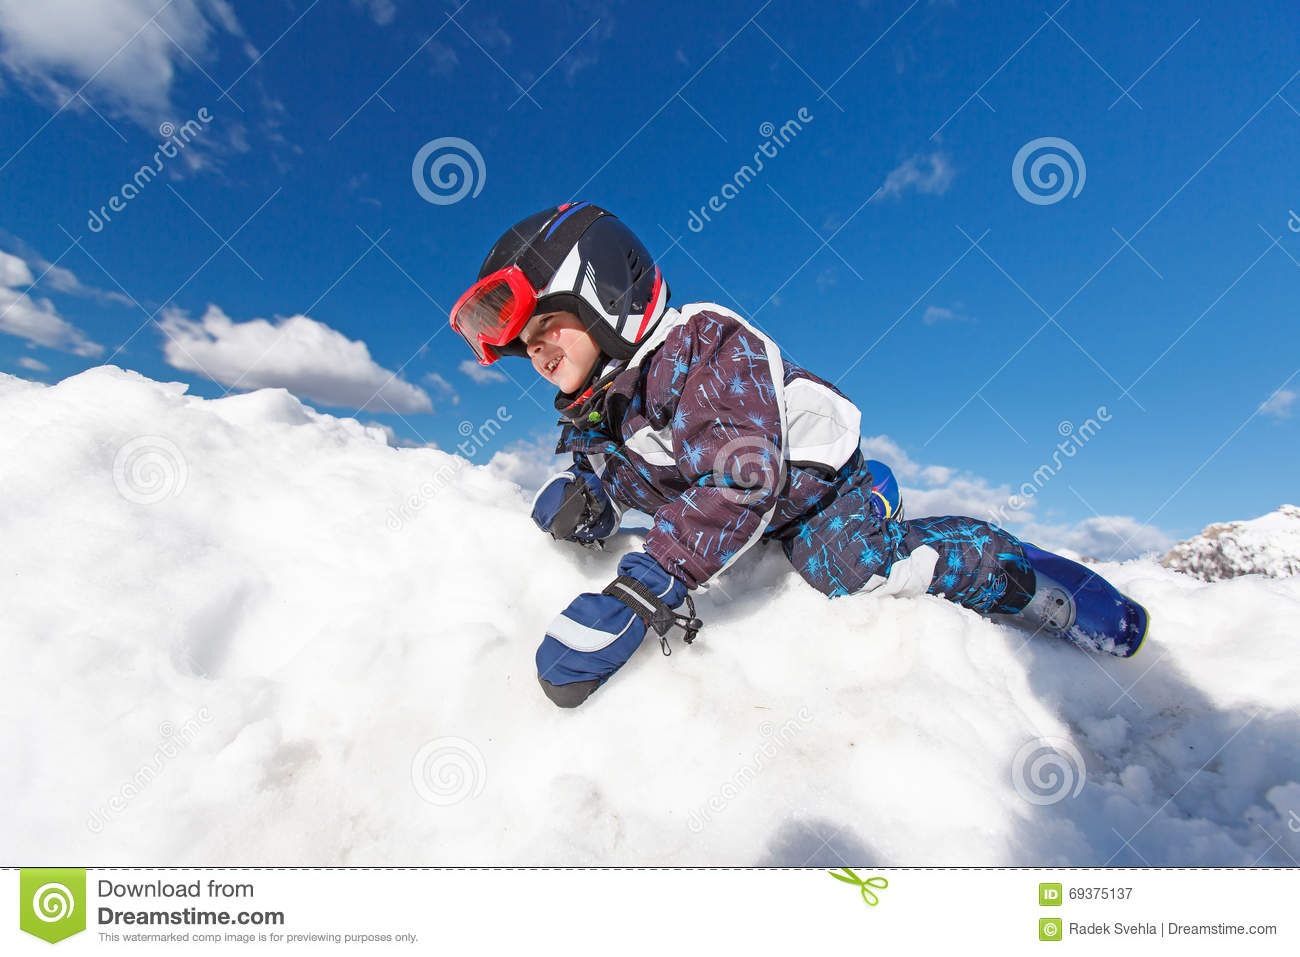 c63a469a8910 Cute little skier. stock image. Image of happy